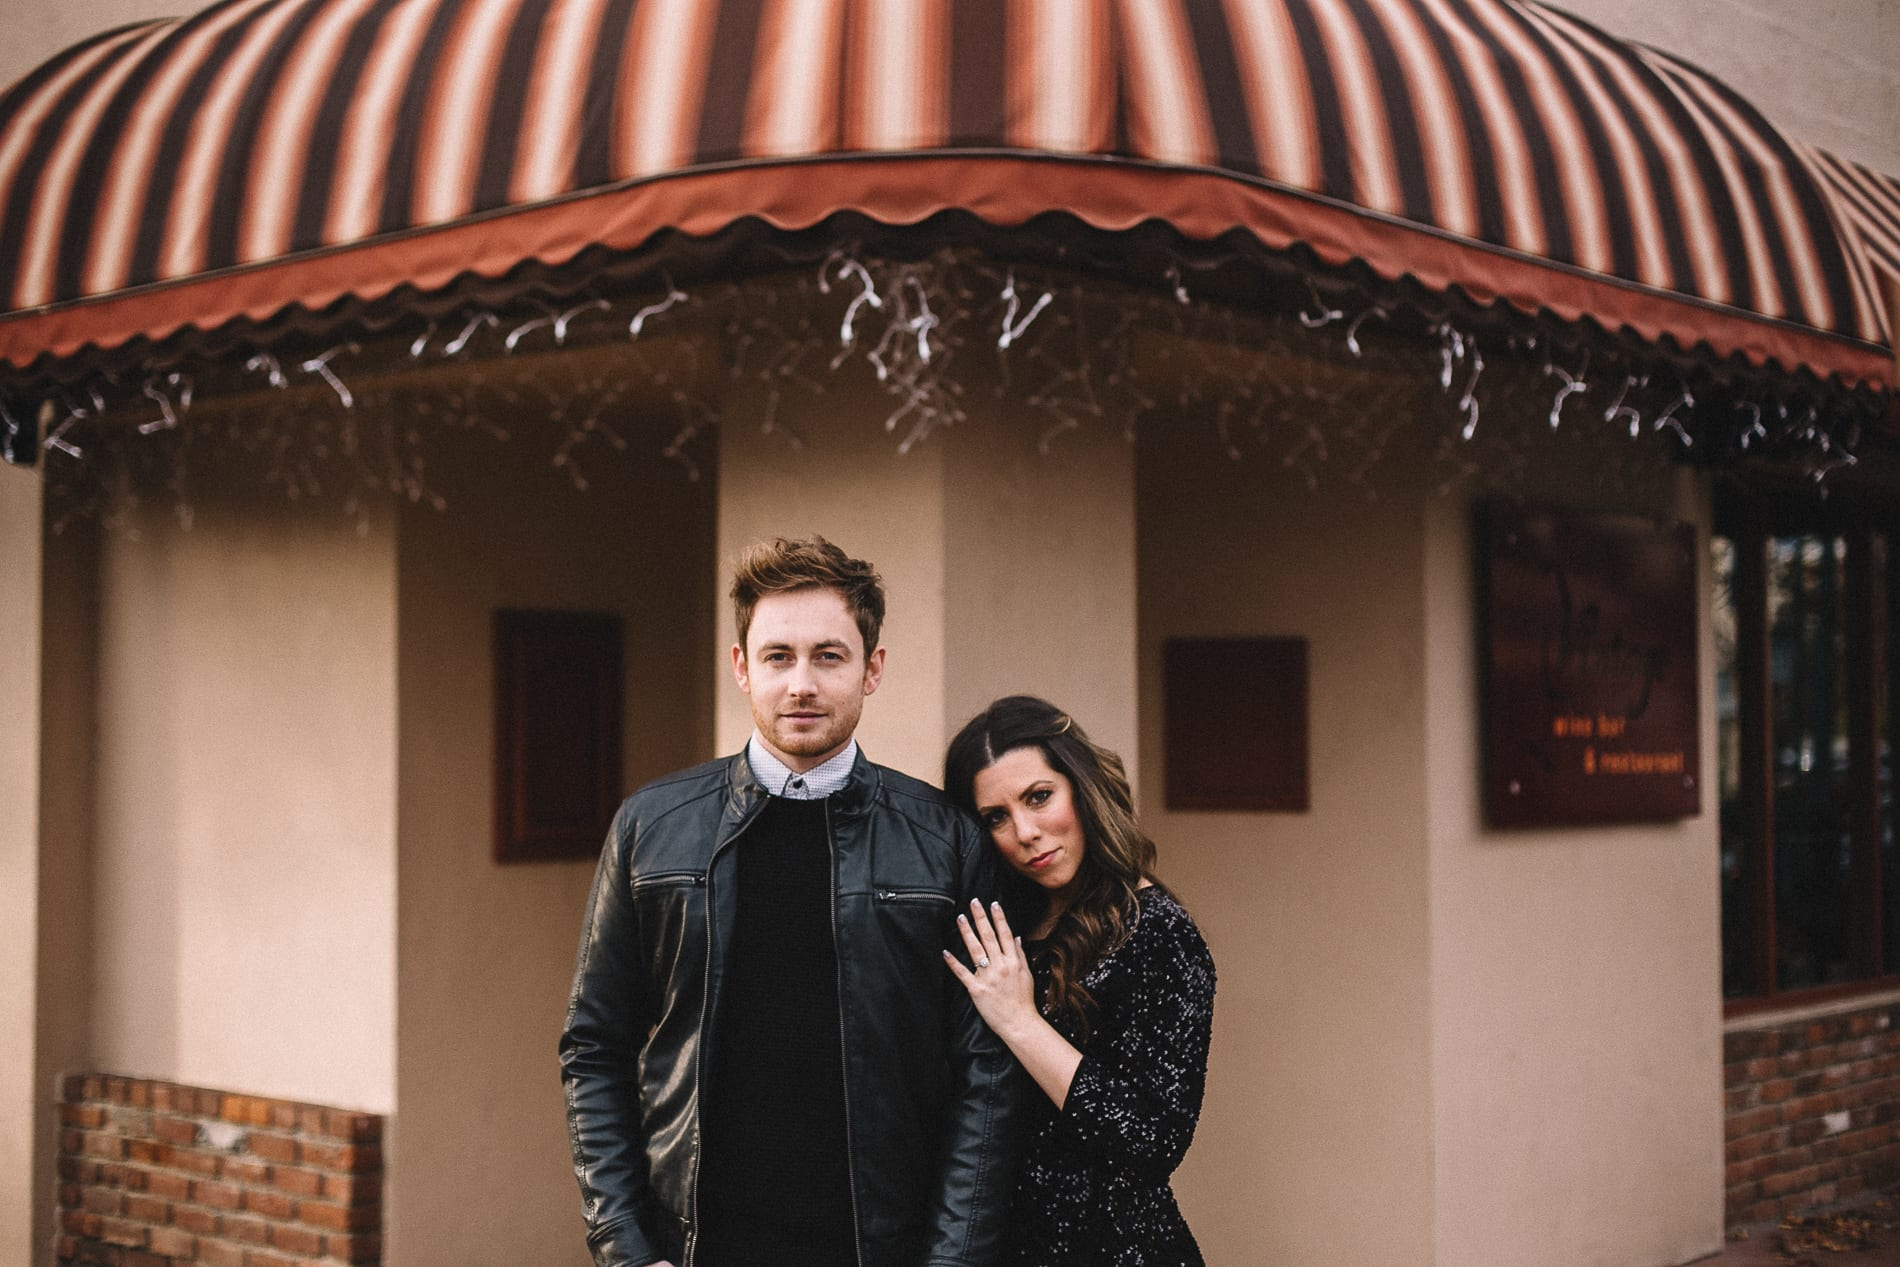 Vintage Wine Bar Downtown Redding Engagement Photo 2